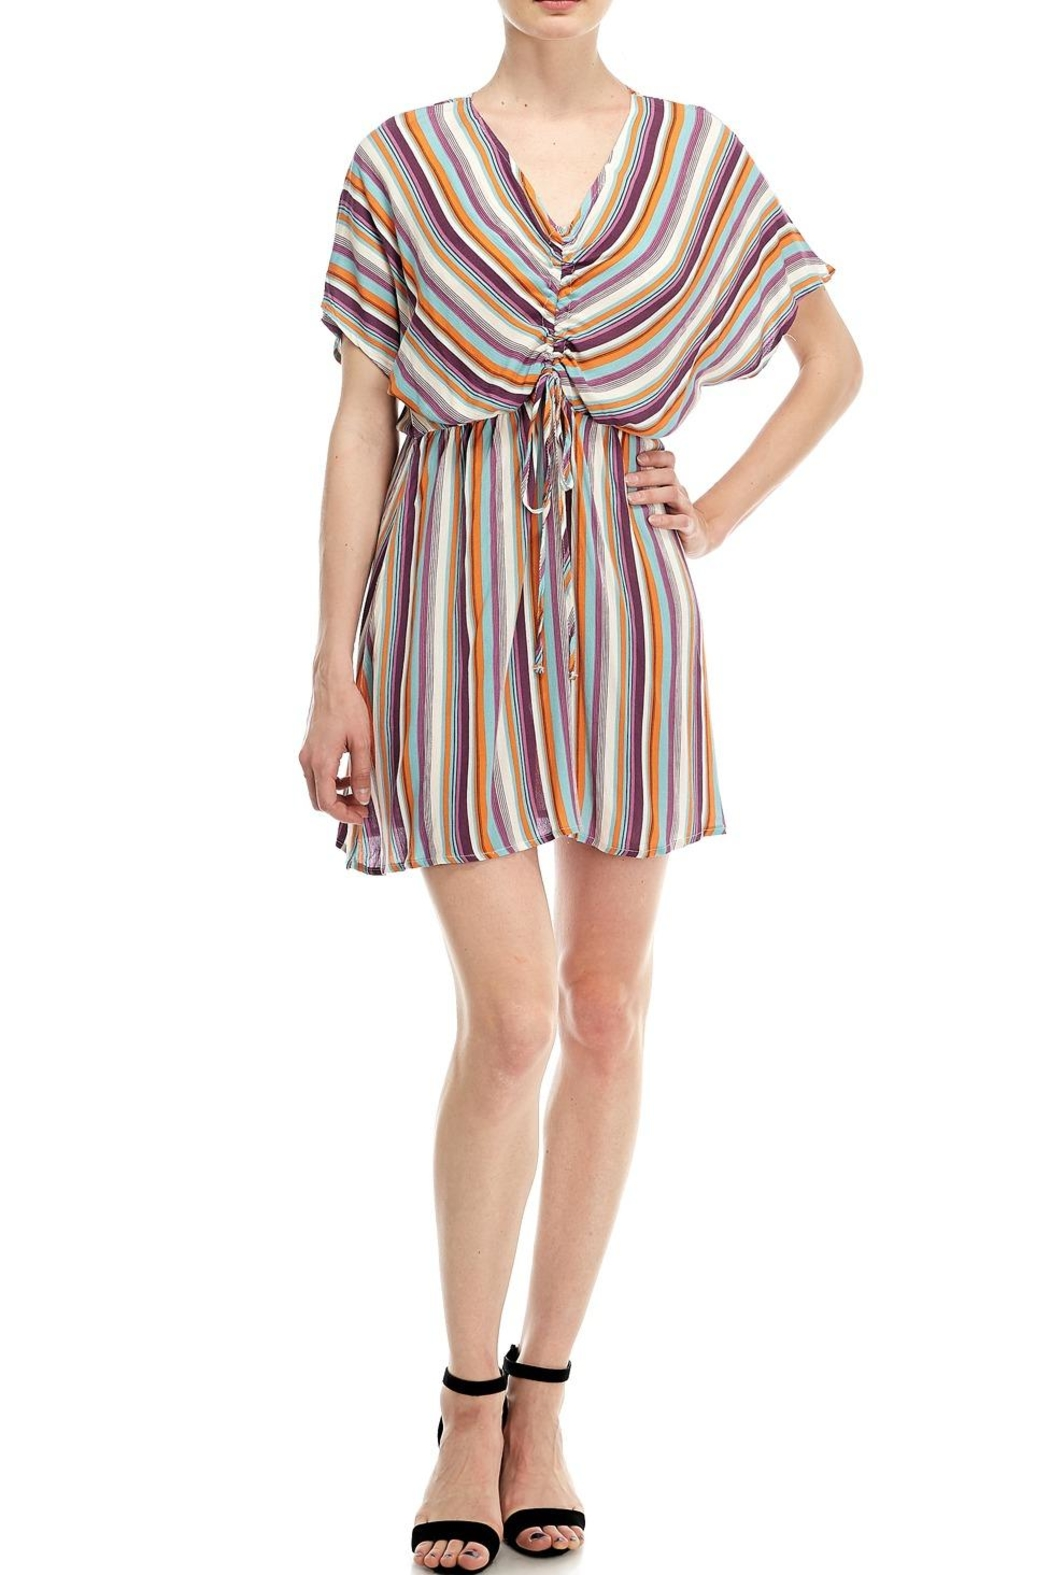 All In Favor Striped Tie Dress - Main Image